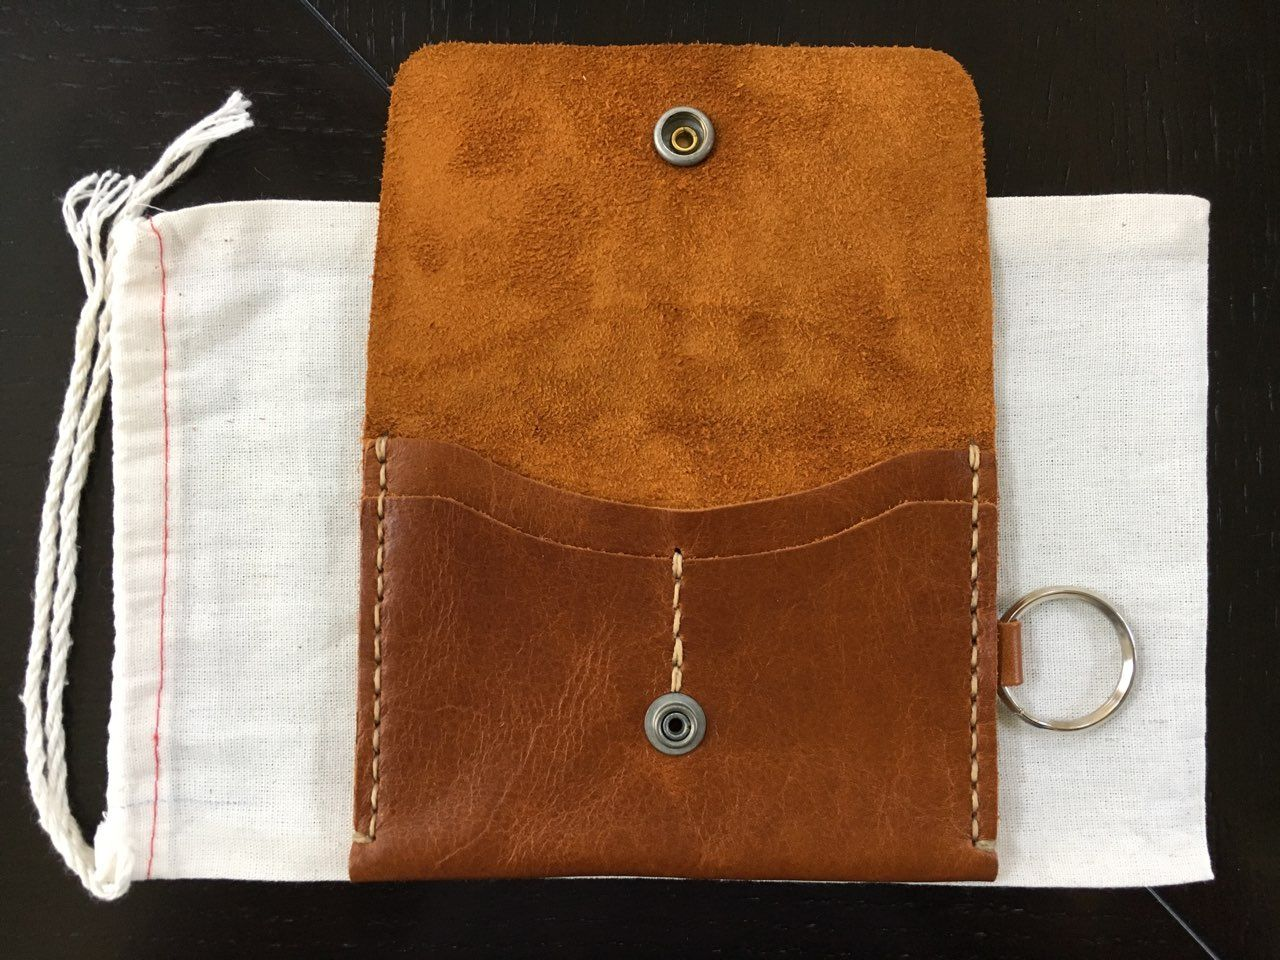 FS: Corter Leather Travel Wallet (Saddle Tan)